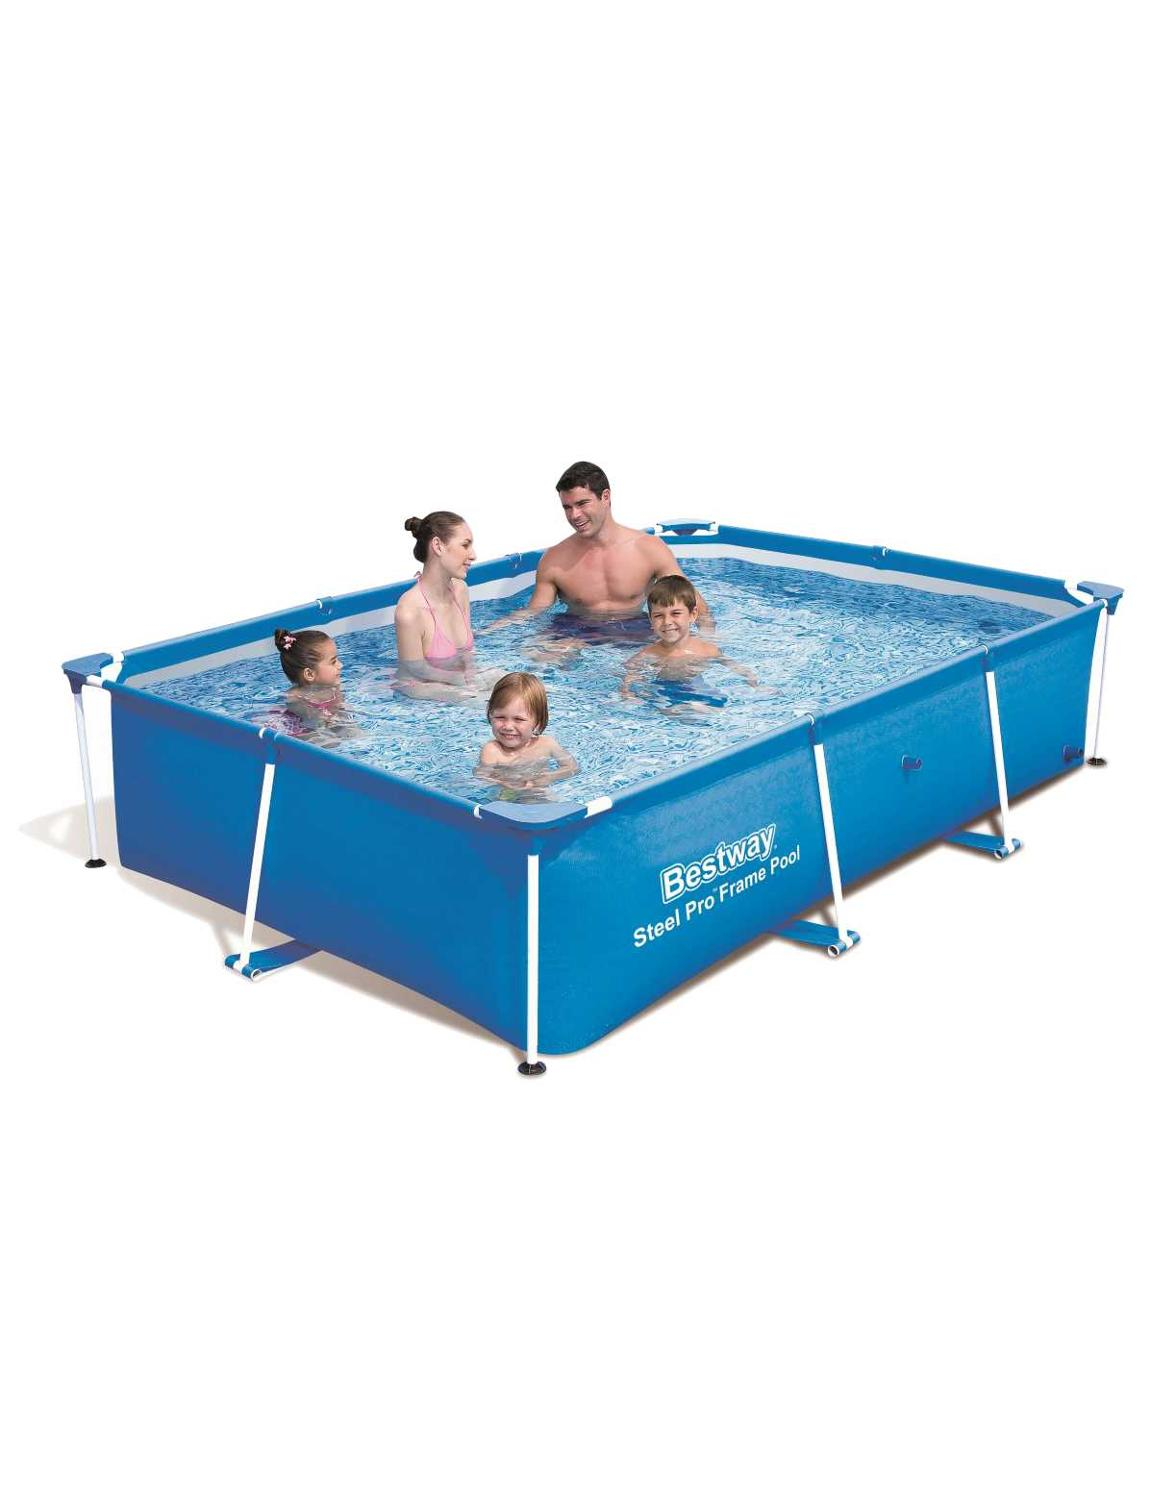 Scaffold Rectangular Pool 259 х170х61 Cm, 2300 L, Blue, Steel Pro Bestway, Item No. 56403